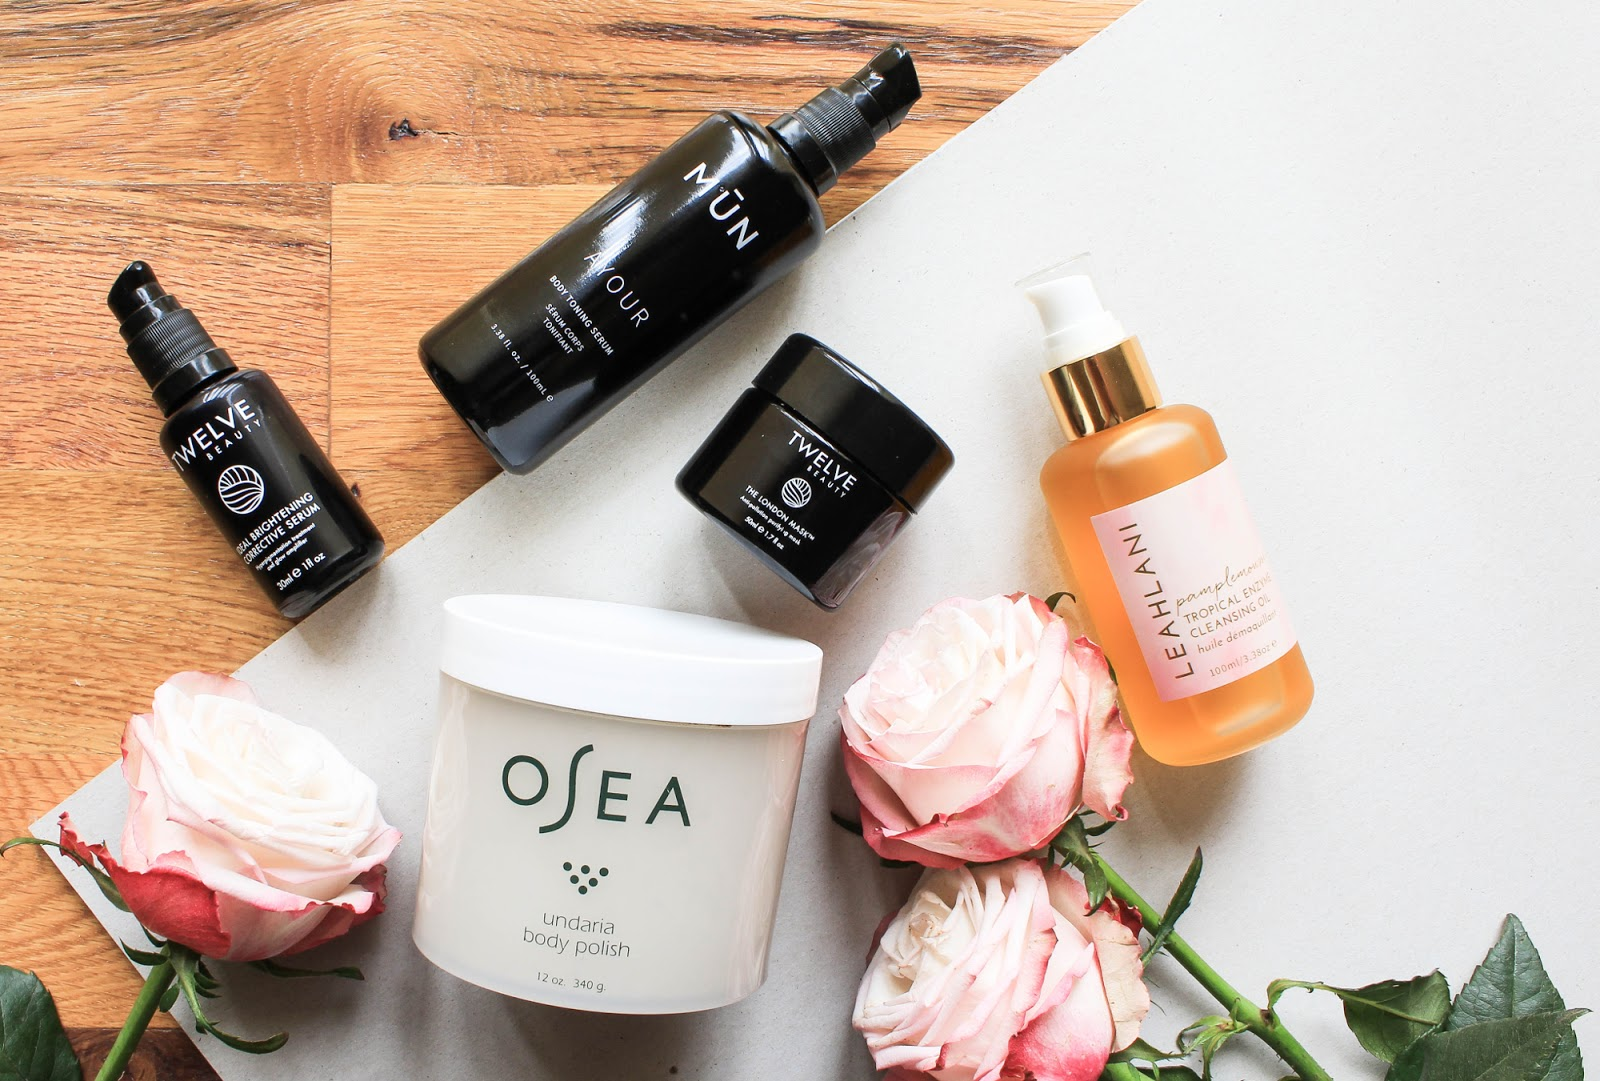 Current Favourite Products featuring Twelve Beauty from Boxwalla, OSEA from Beauty Heroes, Leahlani, Mun Skin.